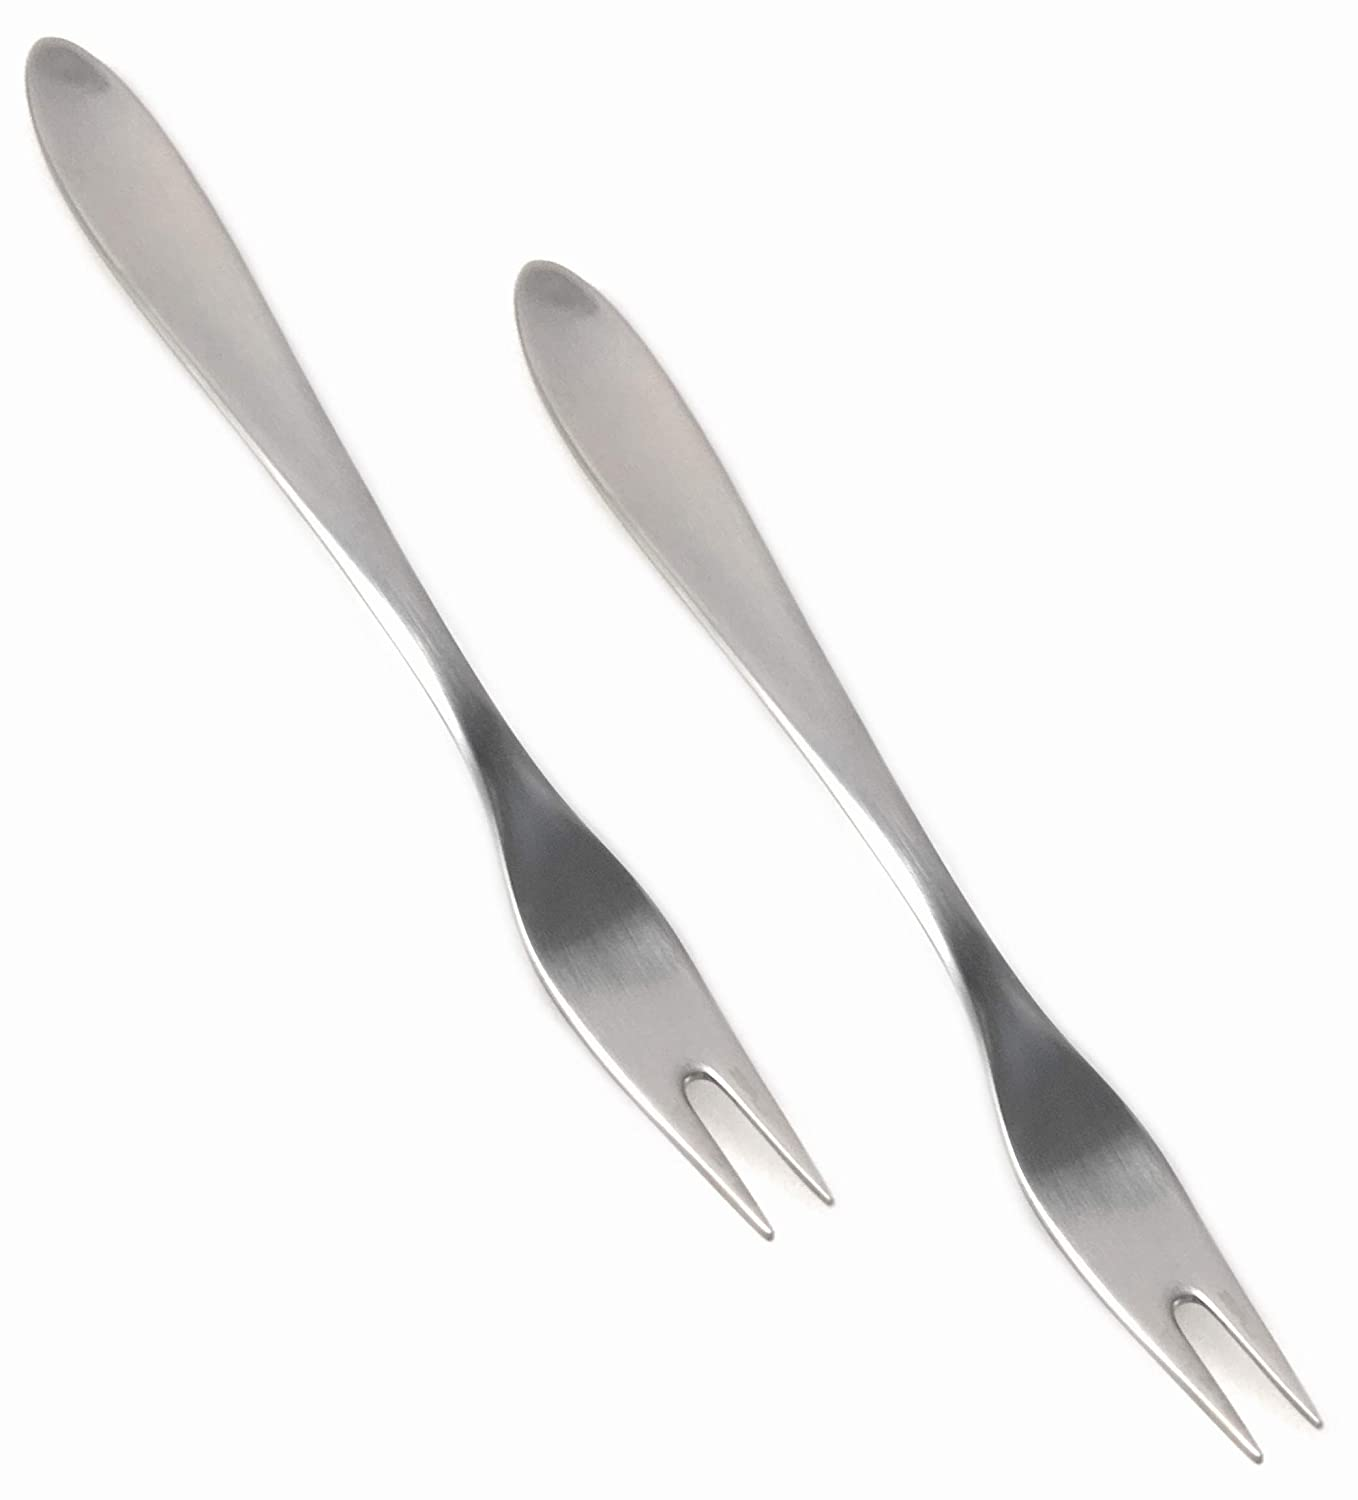 Carl Mertens Solingen, Germany Set of 2 Forks with 2 Prongs as Buffet Fork/Serving Fork/Slicing Fork Tooth Length: 1.5 cm